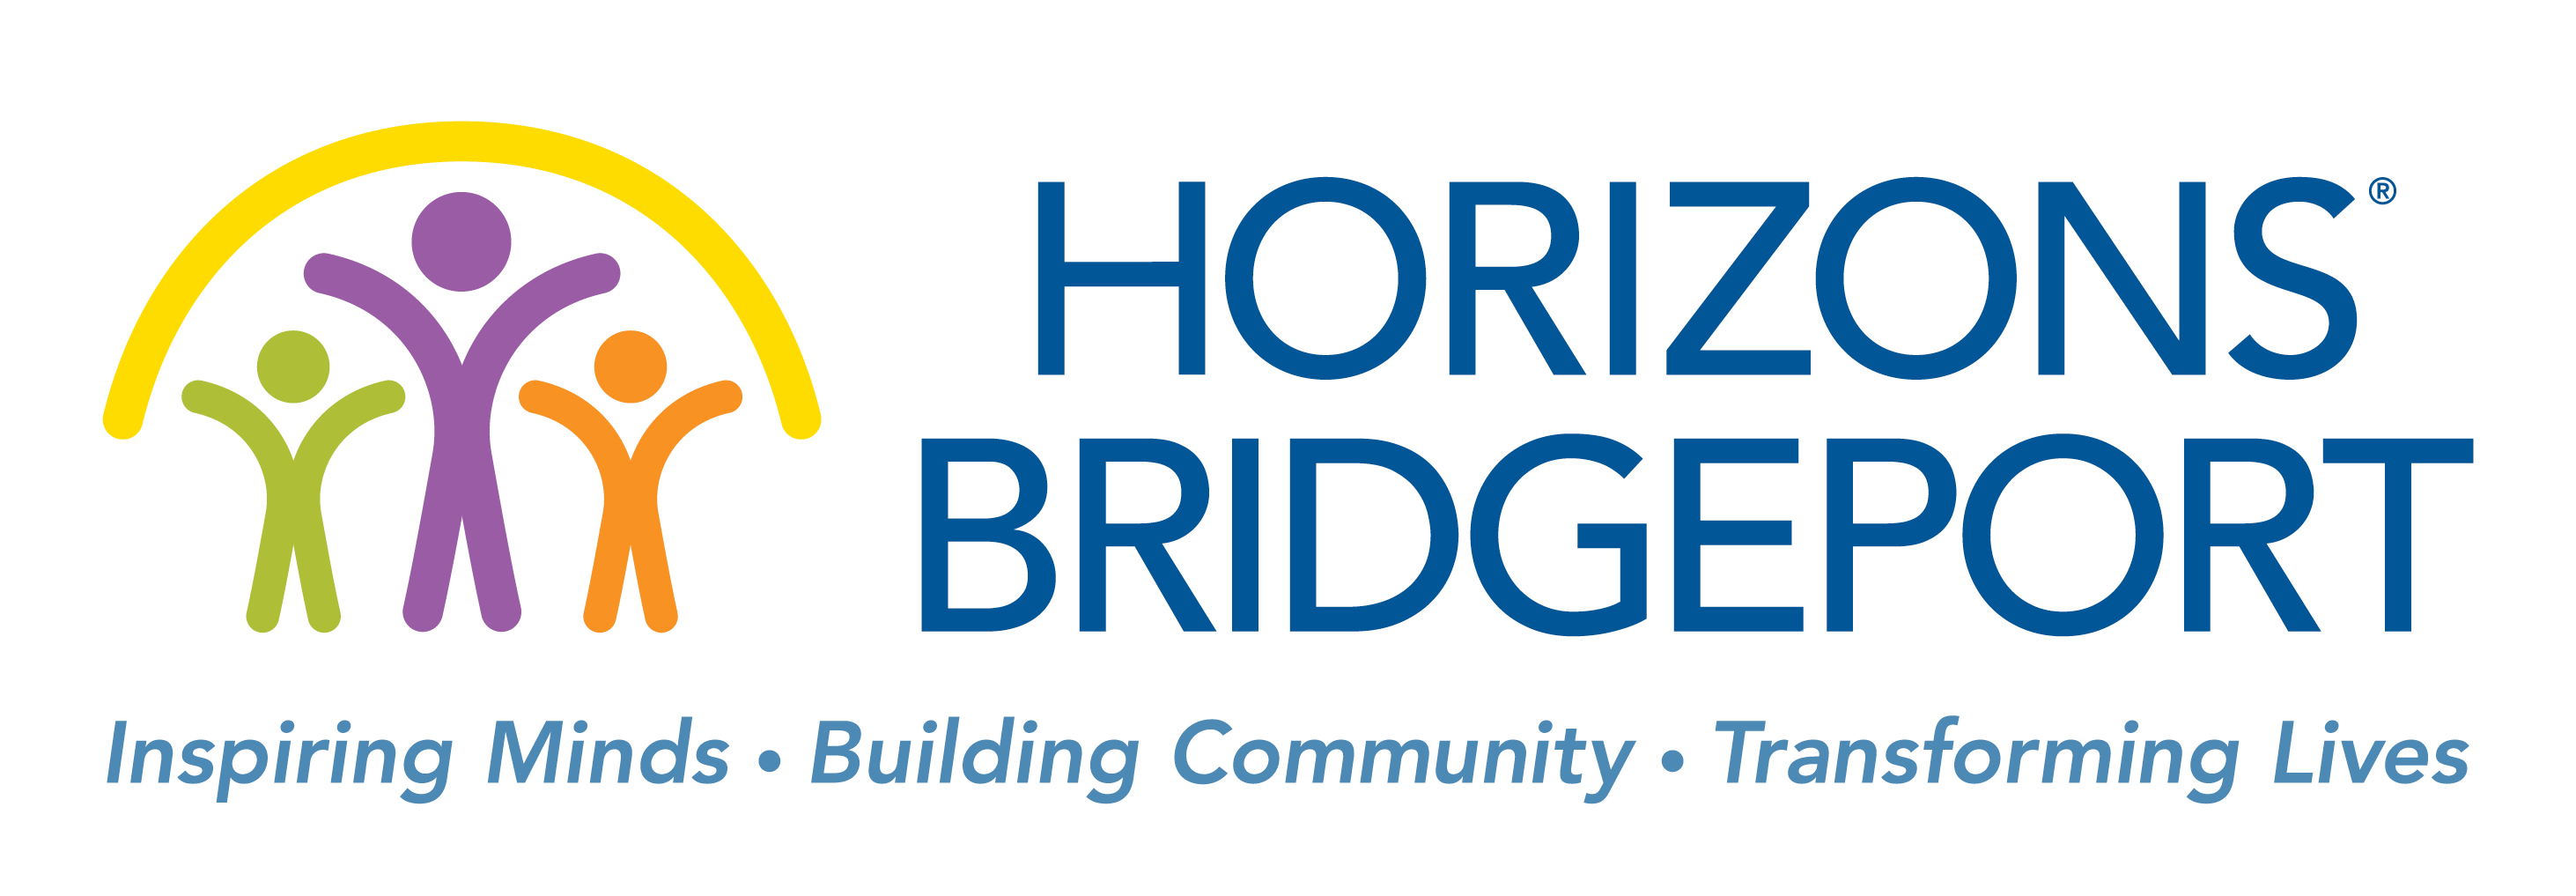 Horizons Bridgeport logo: Inspiring Minds. Building Community. Transforming Lives.